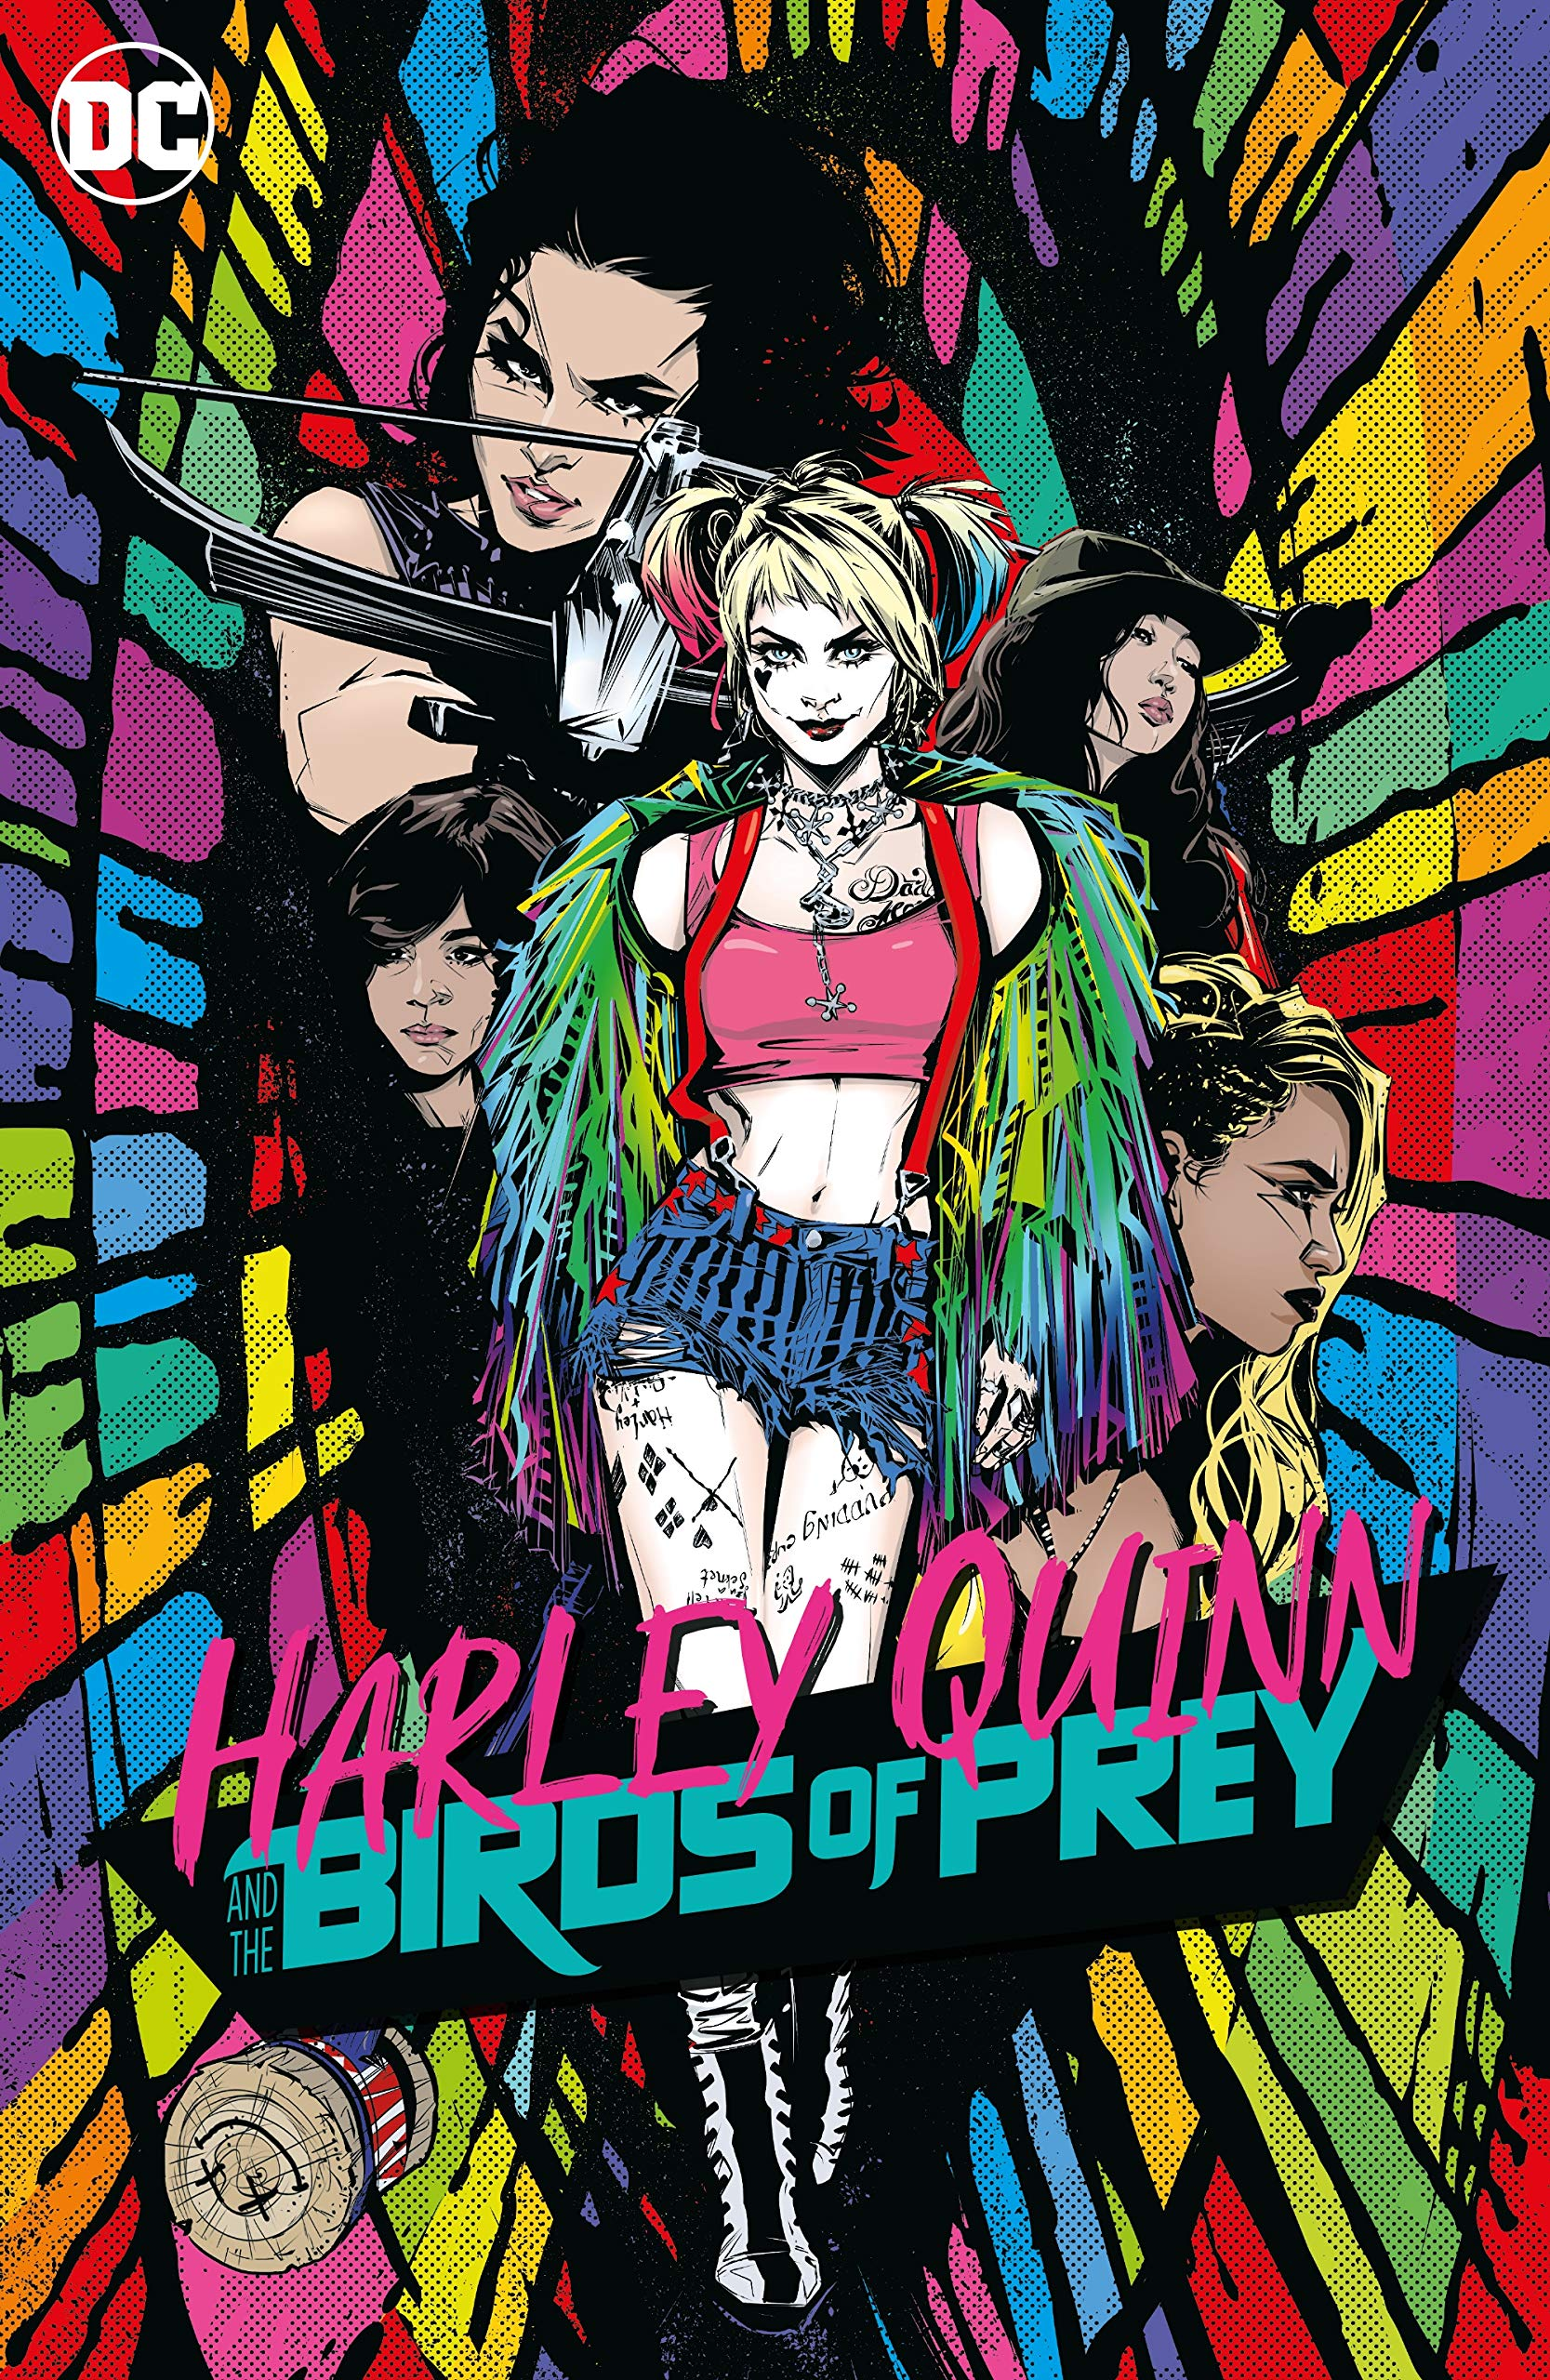 Harley Quinn The Birds Of Prey Harley Quinn And The Birds Of Prey Various 9781401294830 Amazon Com Books